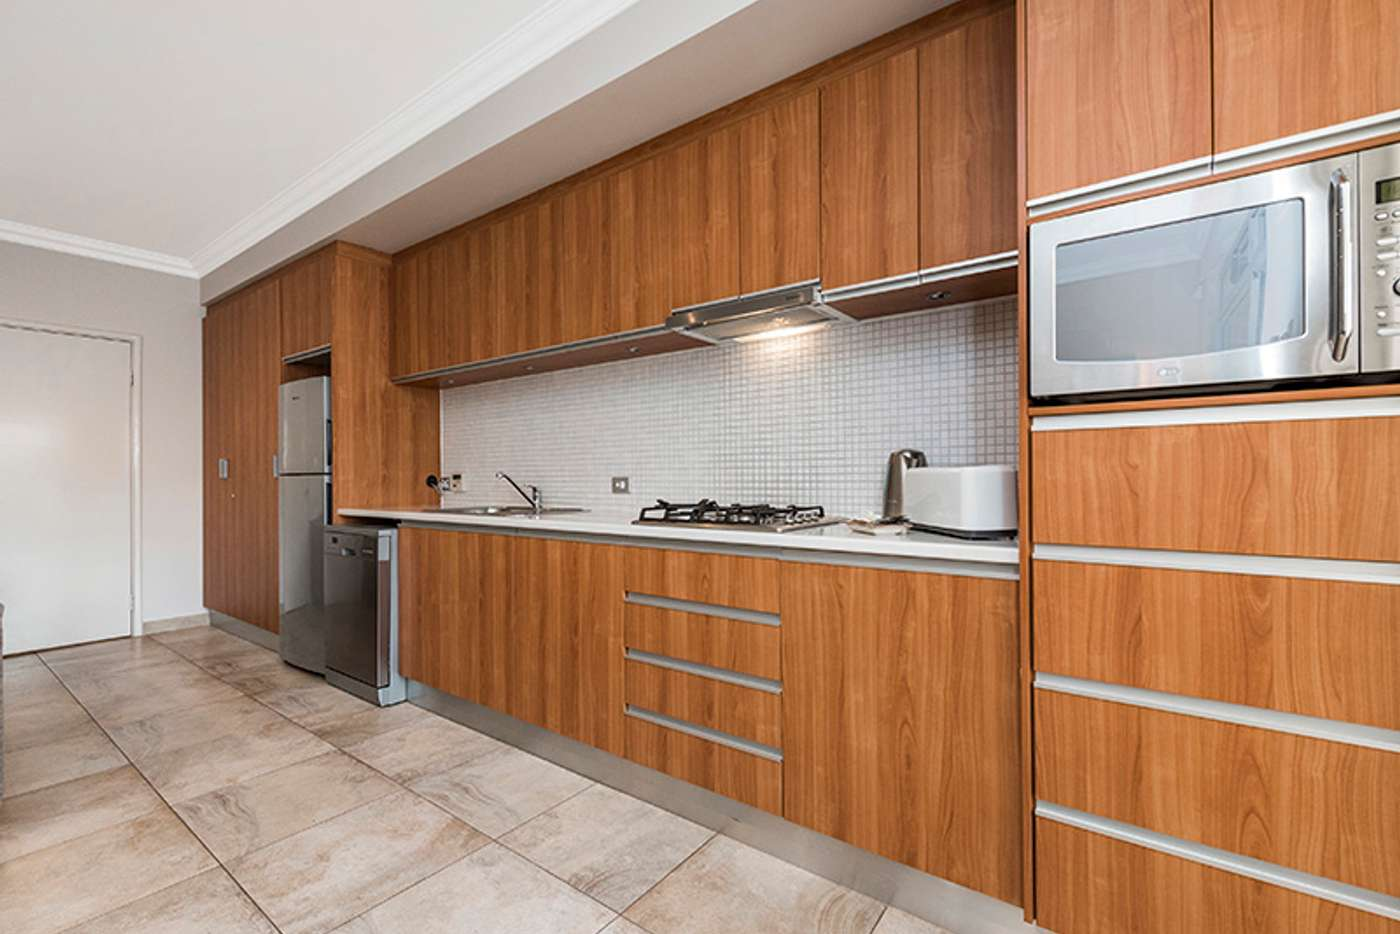 Seventh view of Homely apartment listing, 24 Macarthur Street, Cottesloe WA 6011